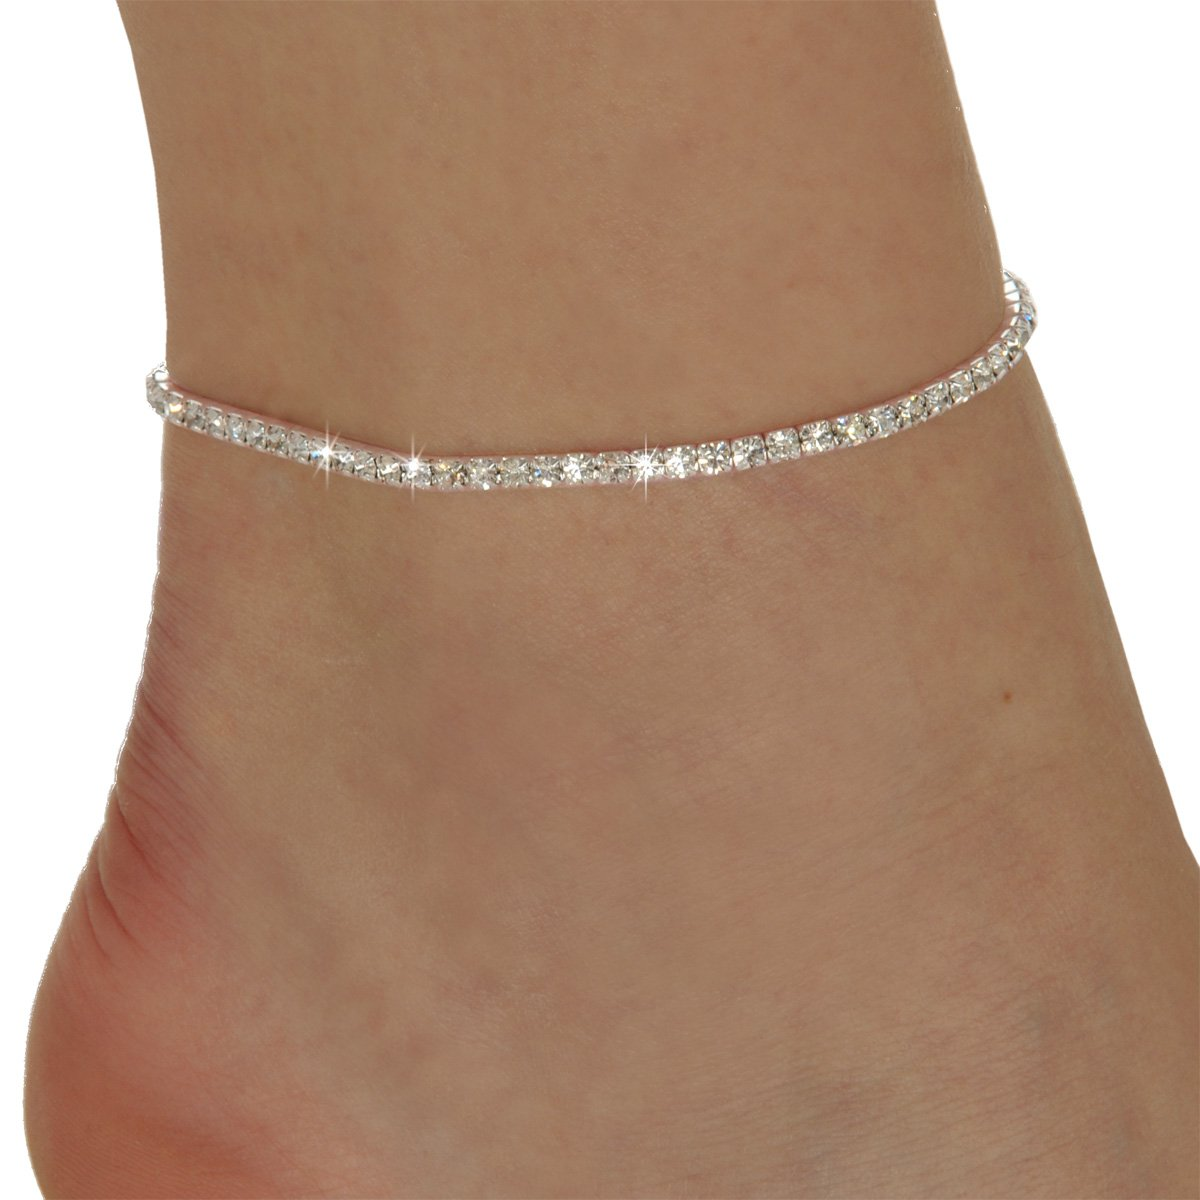 bracelets bracelet silver birthstone bangle custommade stackable gold ankle mother custom anklet adjustable personalized child com gallery charm toddler